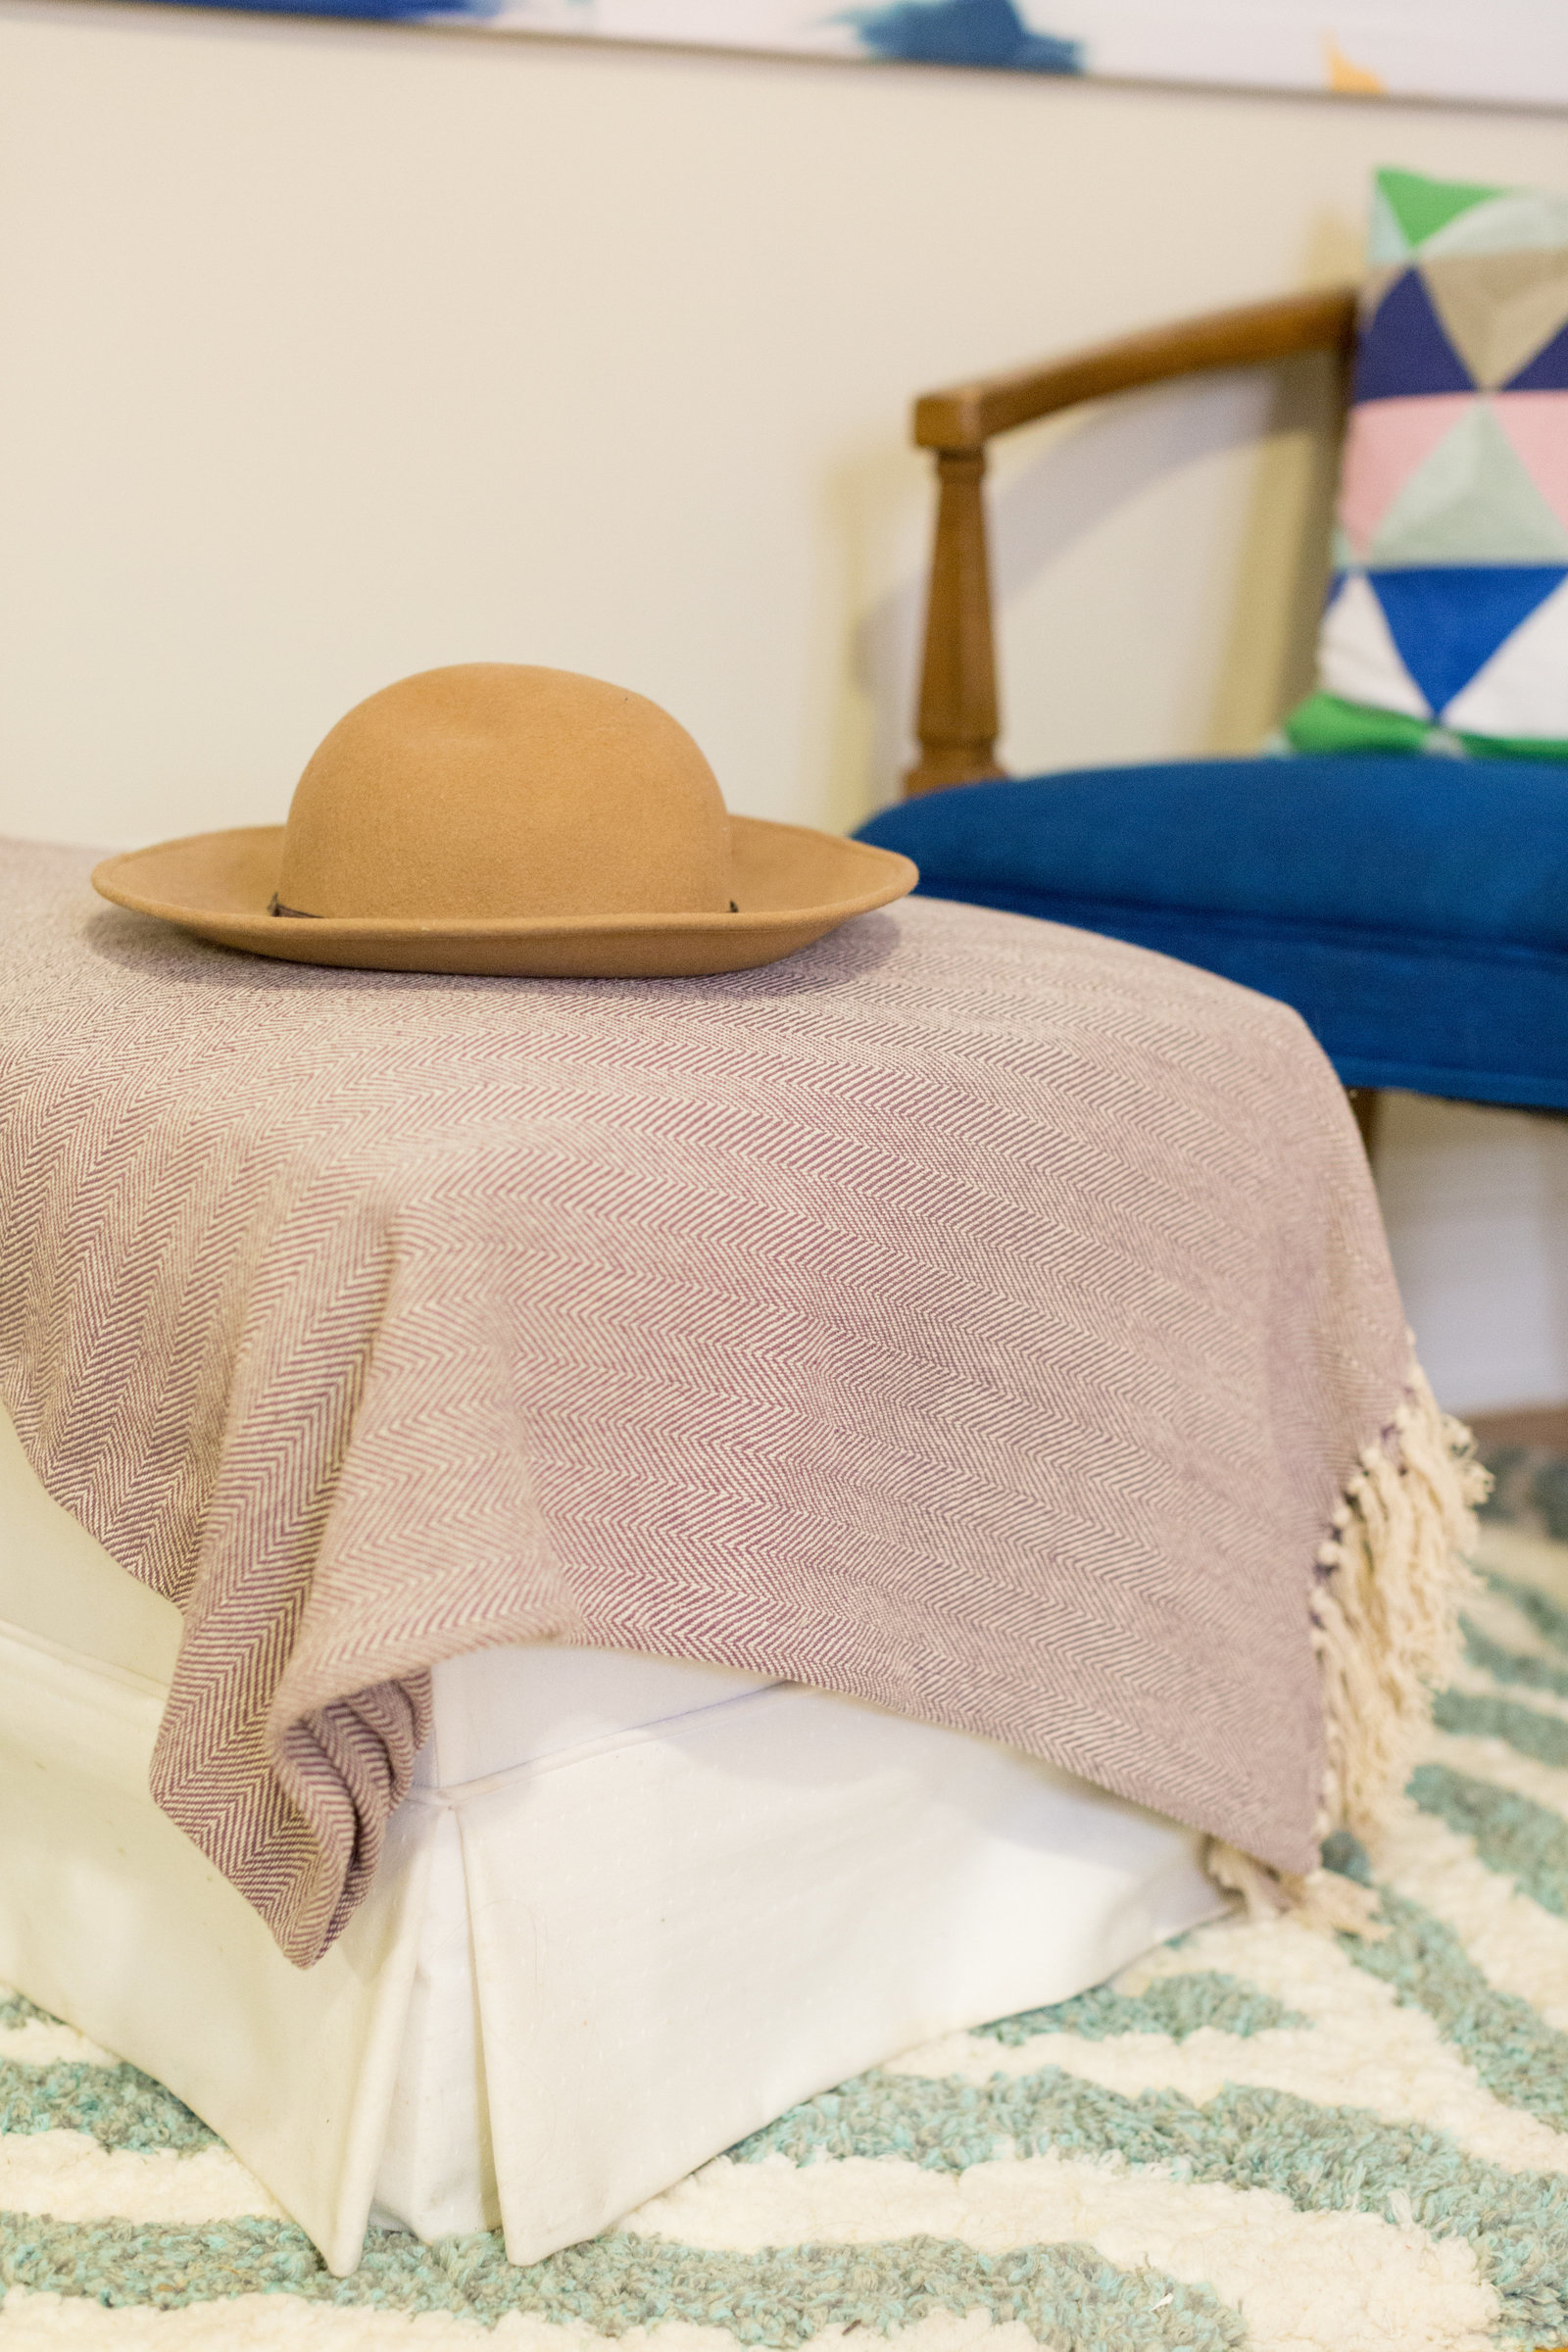 A tan sued hat on a blanket on an ottoman.